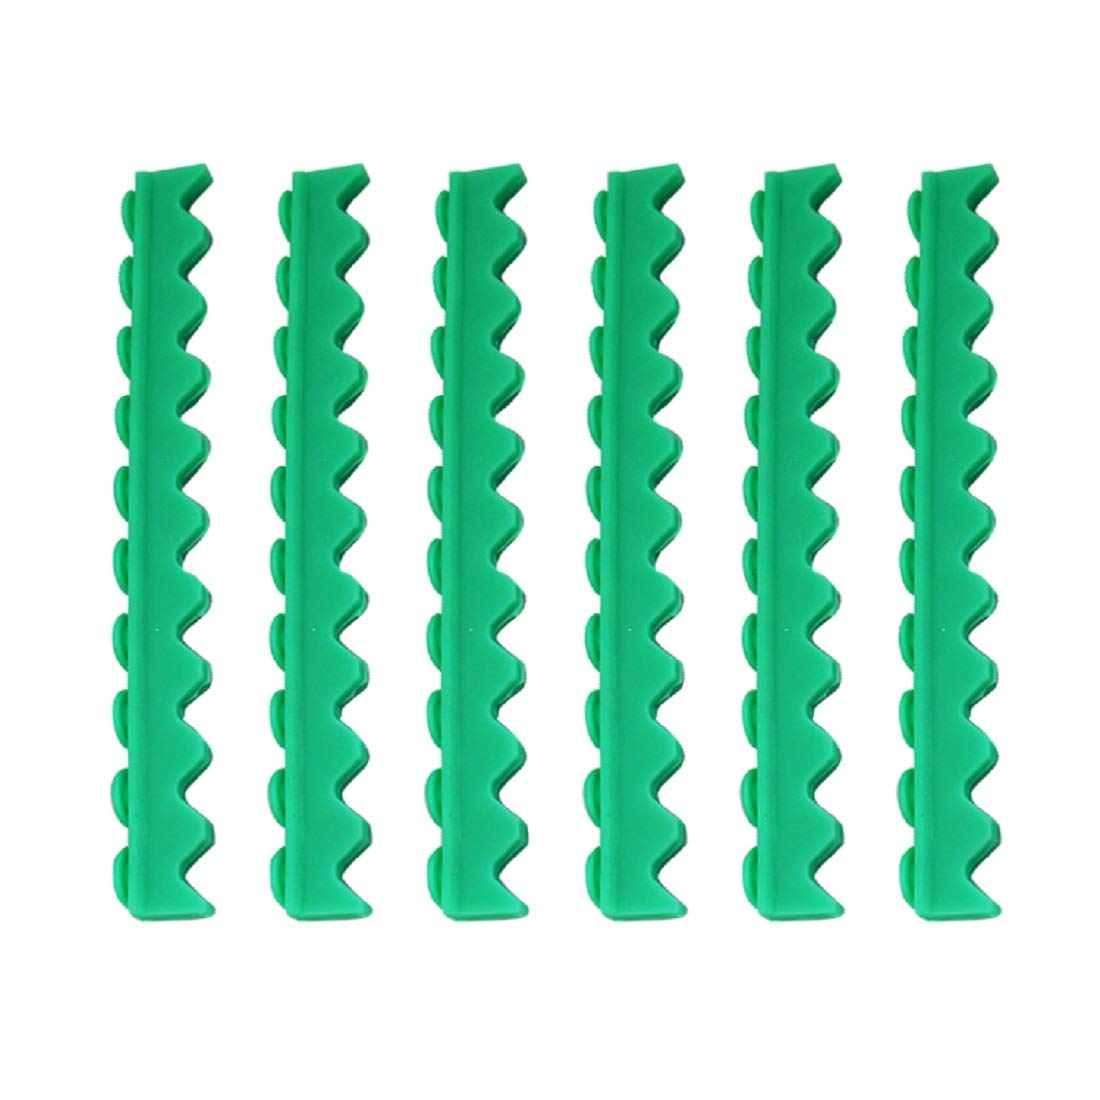 Tinsay Replacement Silicone Rubber Insert Holder for Dental 10 Instruments Cassette Green 3pc/1set